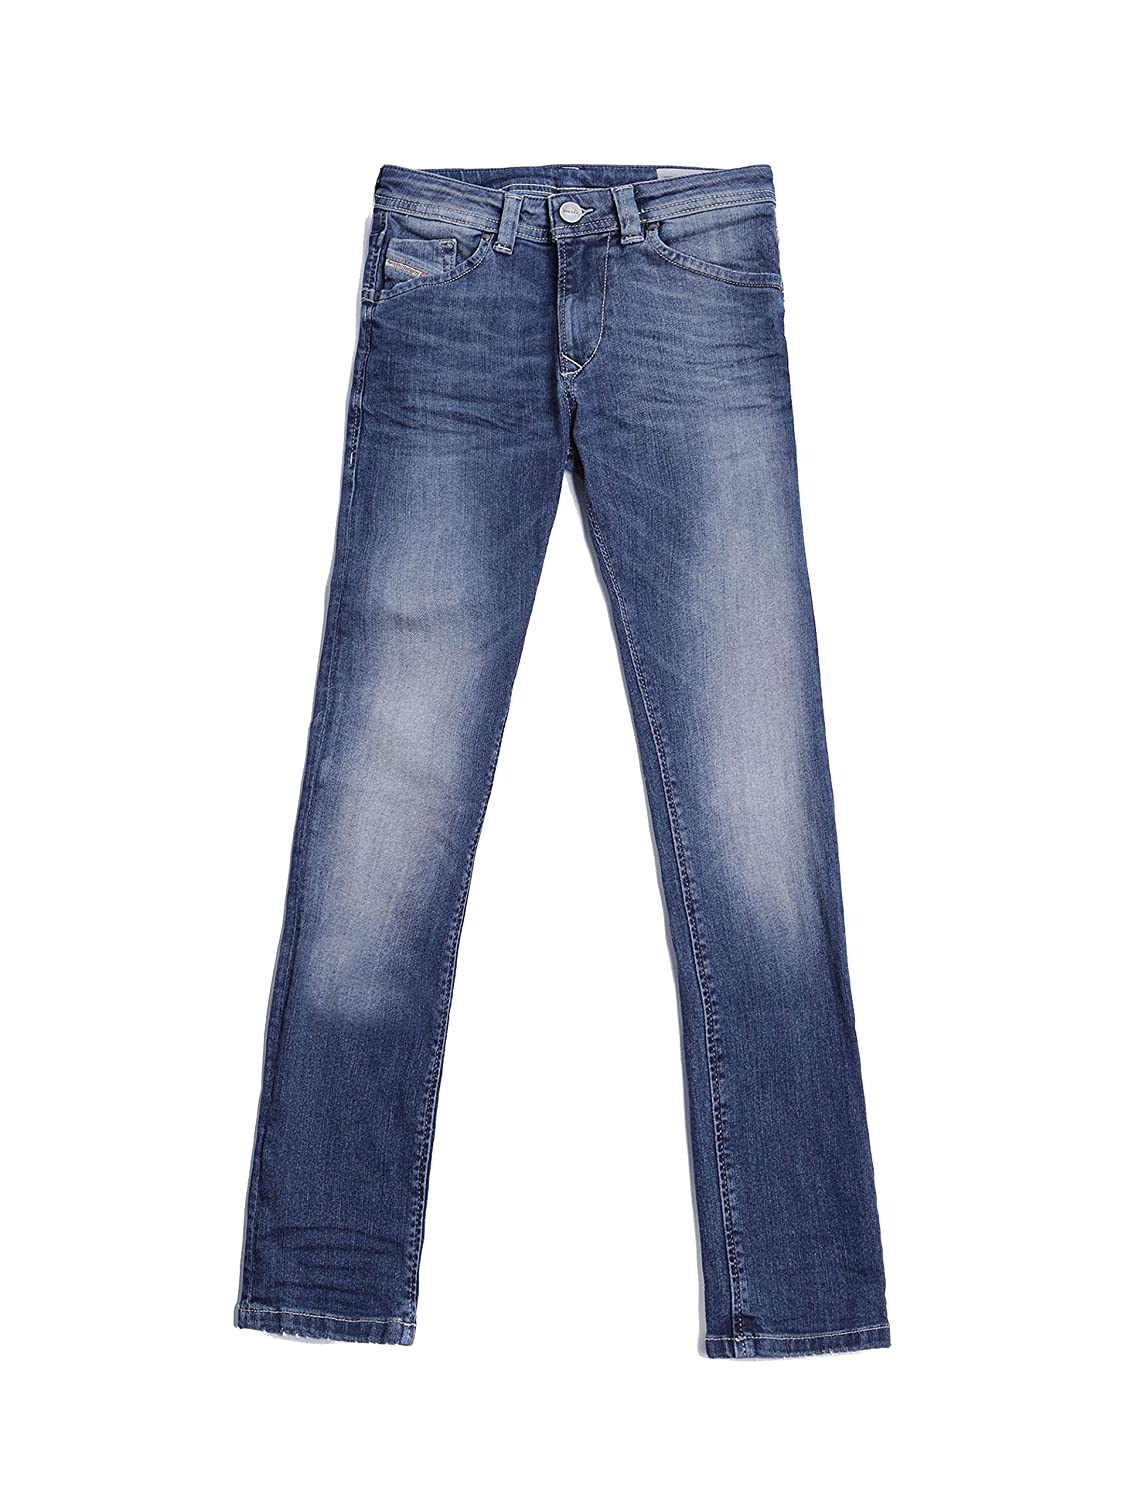 Diesel - Jeans Ragazzi Denim Regular-Slim Fit con Gamba Affusolata Darron